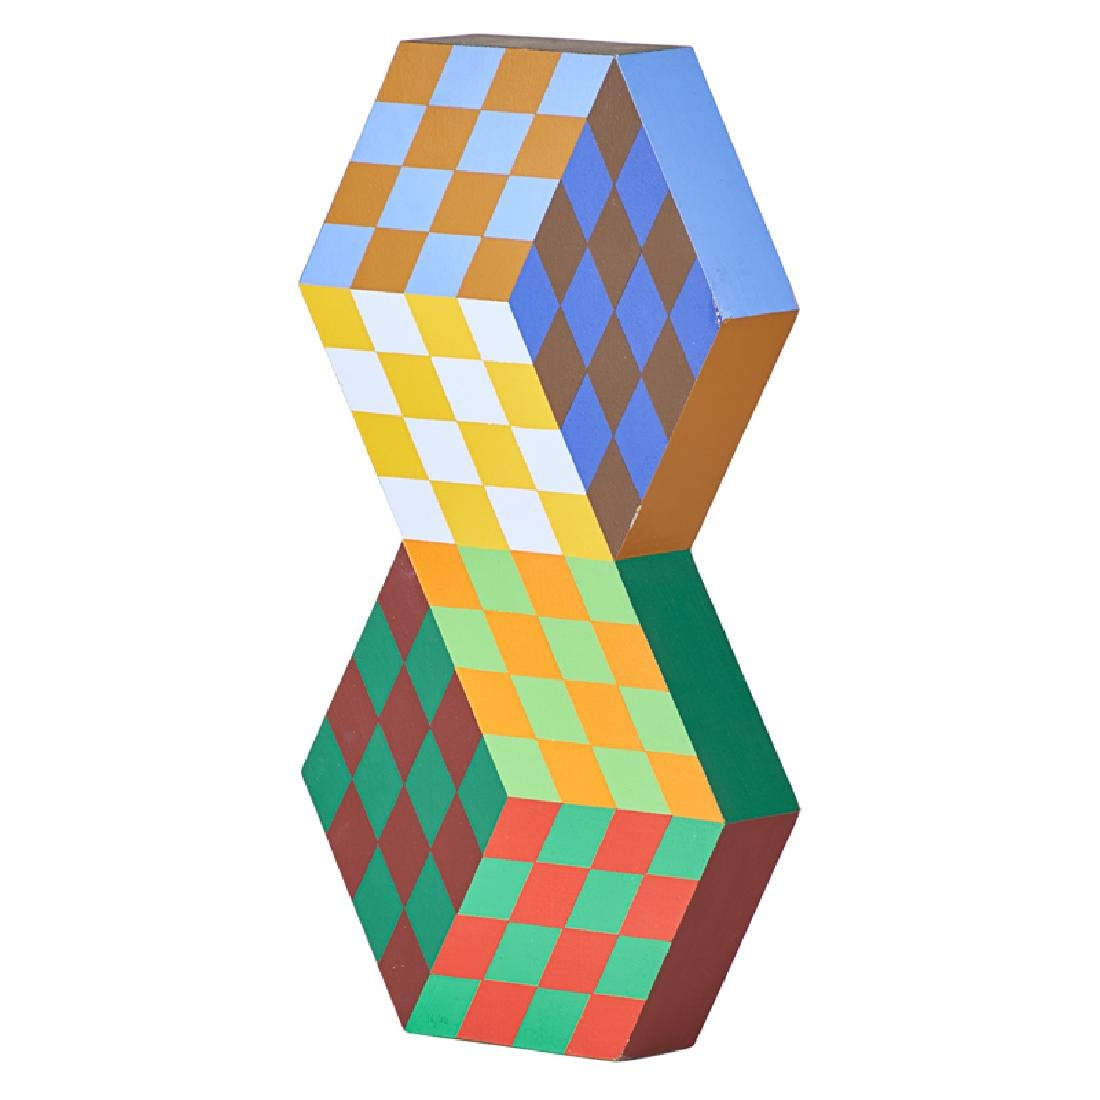 Victor Vasarely (French/Hungarian, 1908-1997) - 2